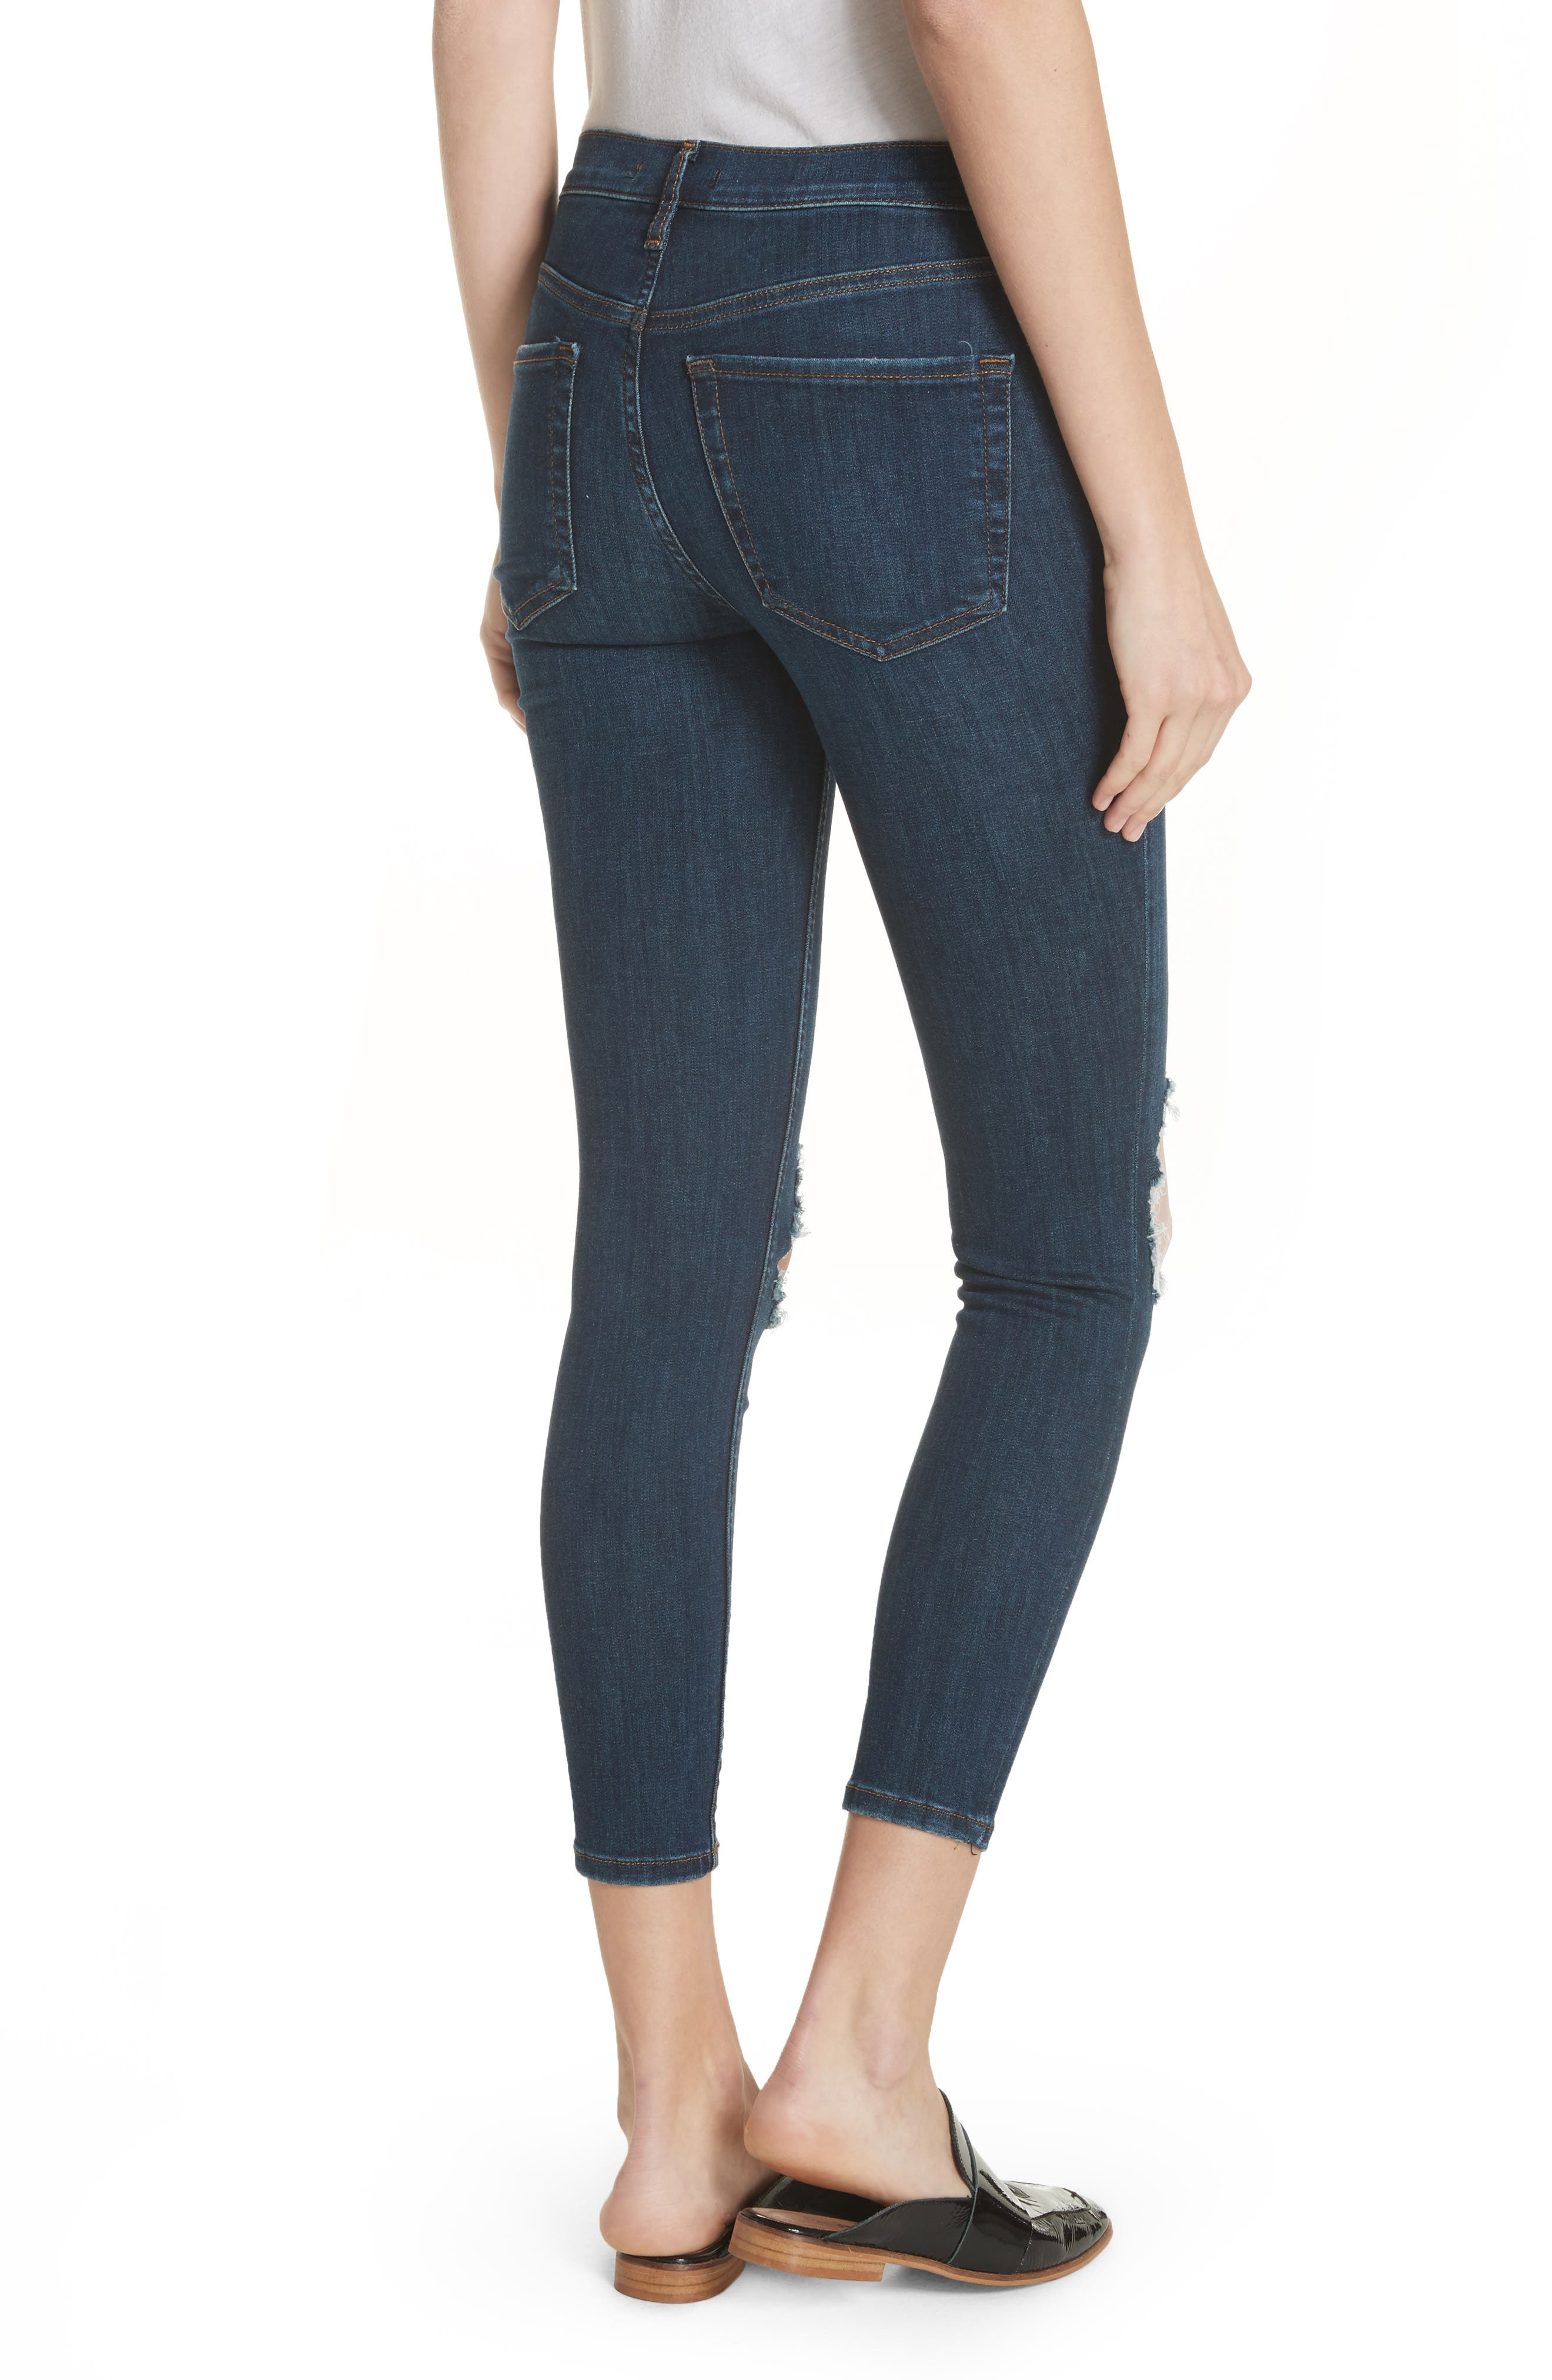 FREE PEOPLE, We the Free by Free People High Waist Ankle Skinny Jeans, Alternate thumbnail 2, color, DARK BLUE